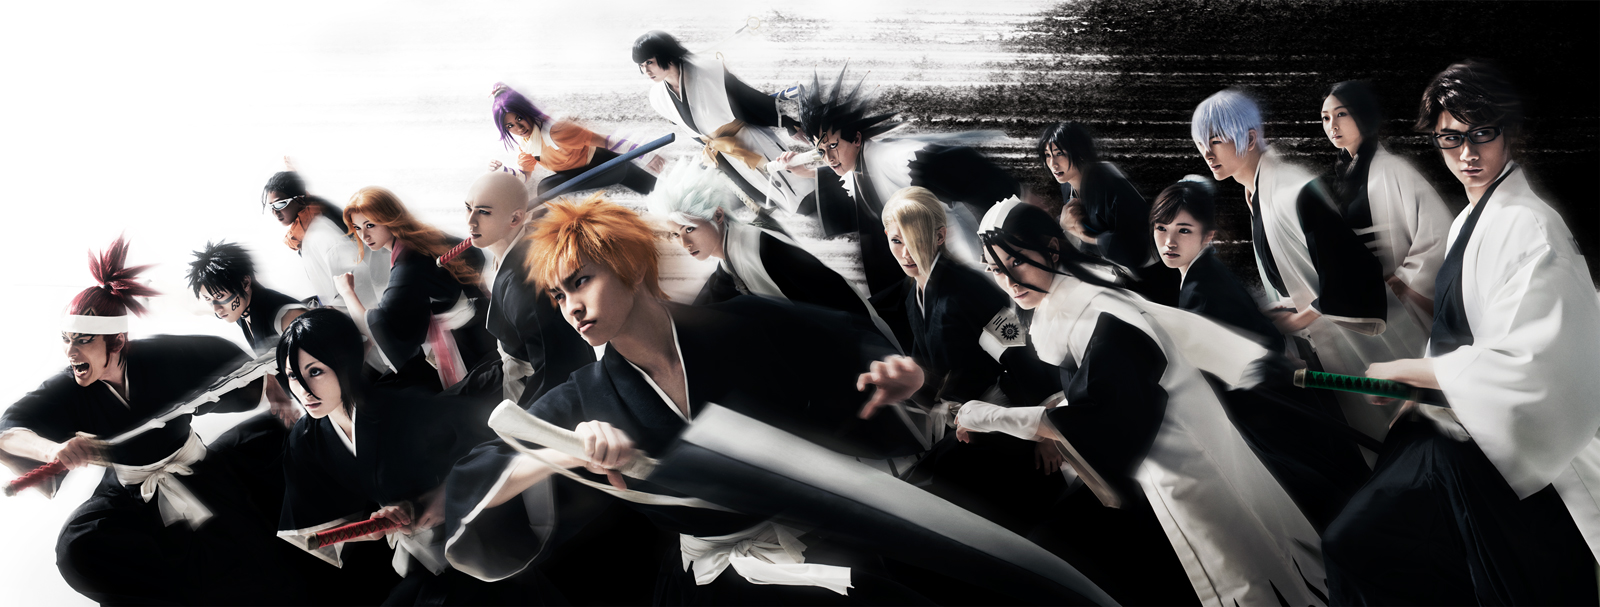 rock musical bleach reveal main visual and new cast